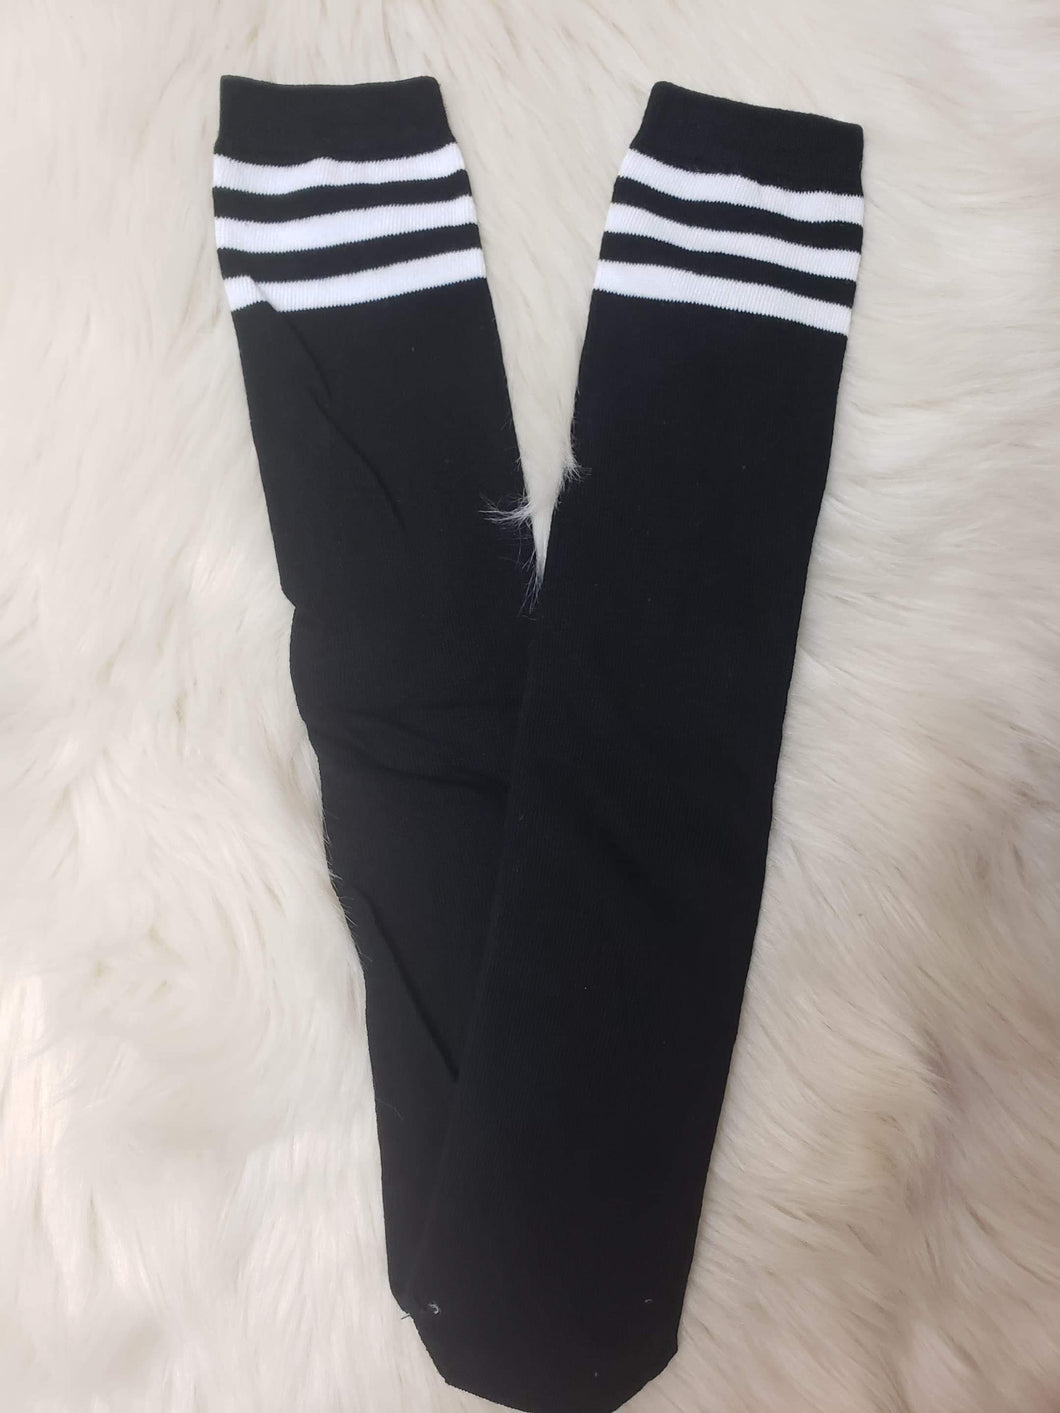 INVENTORY LIQUIDATION! IN STOCK! Black and White Knee Socks